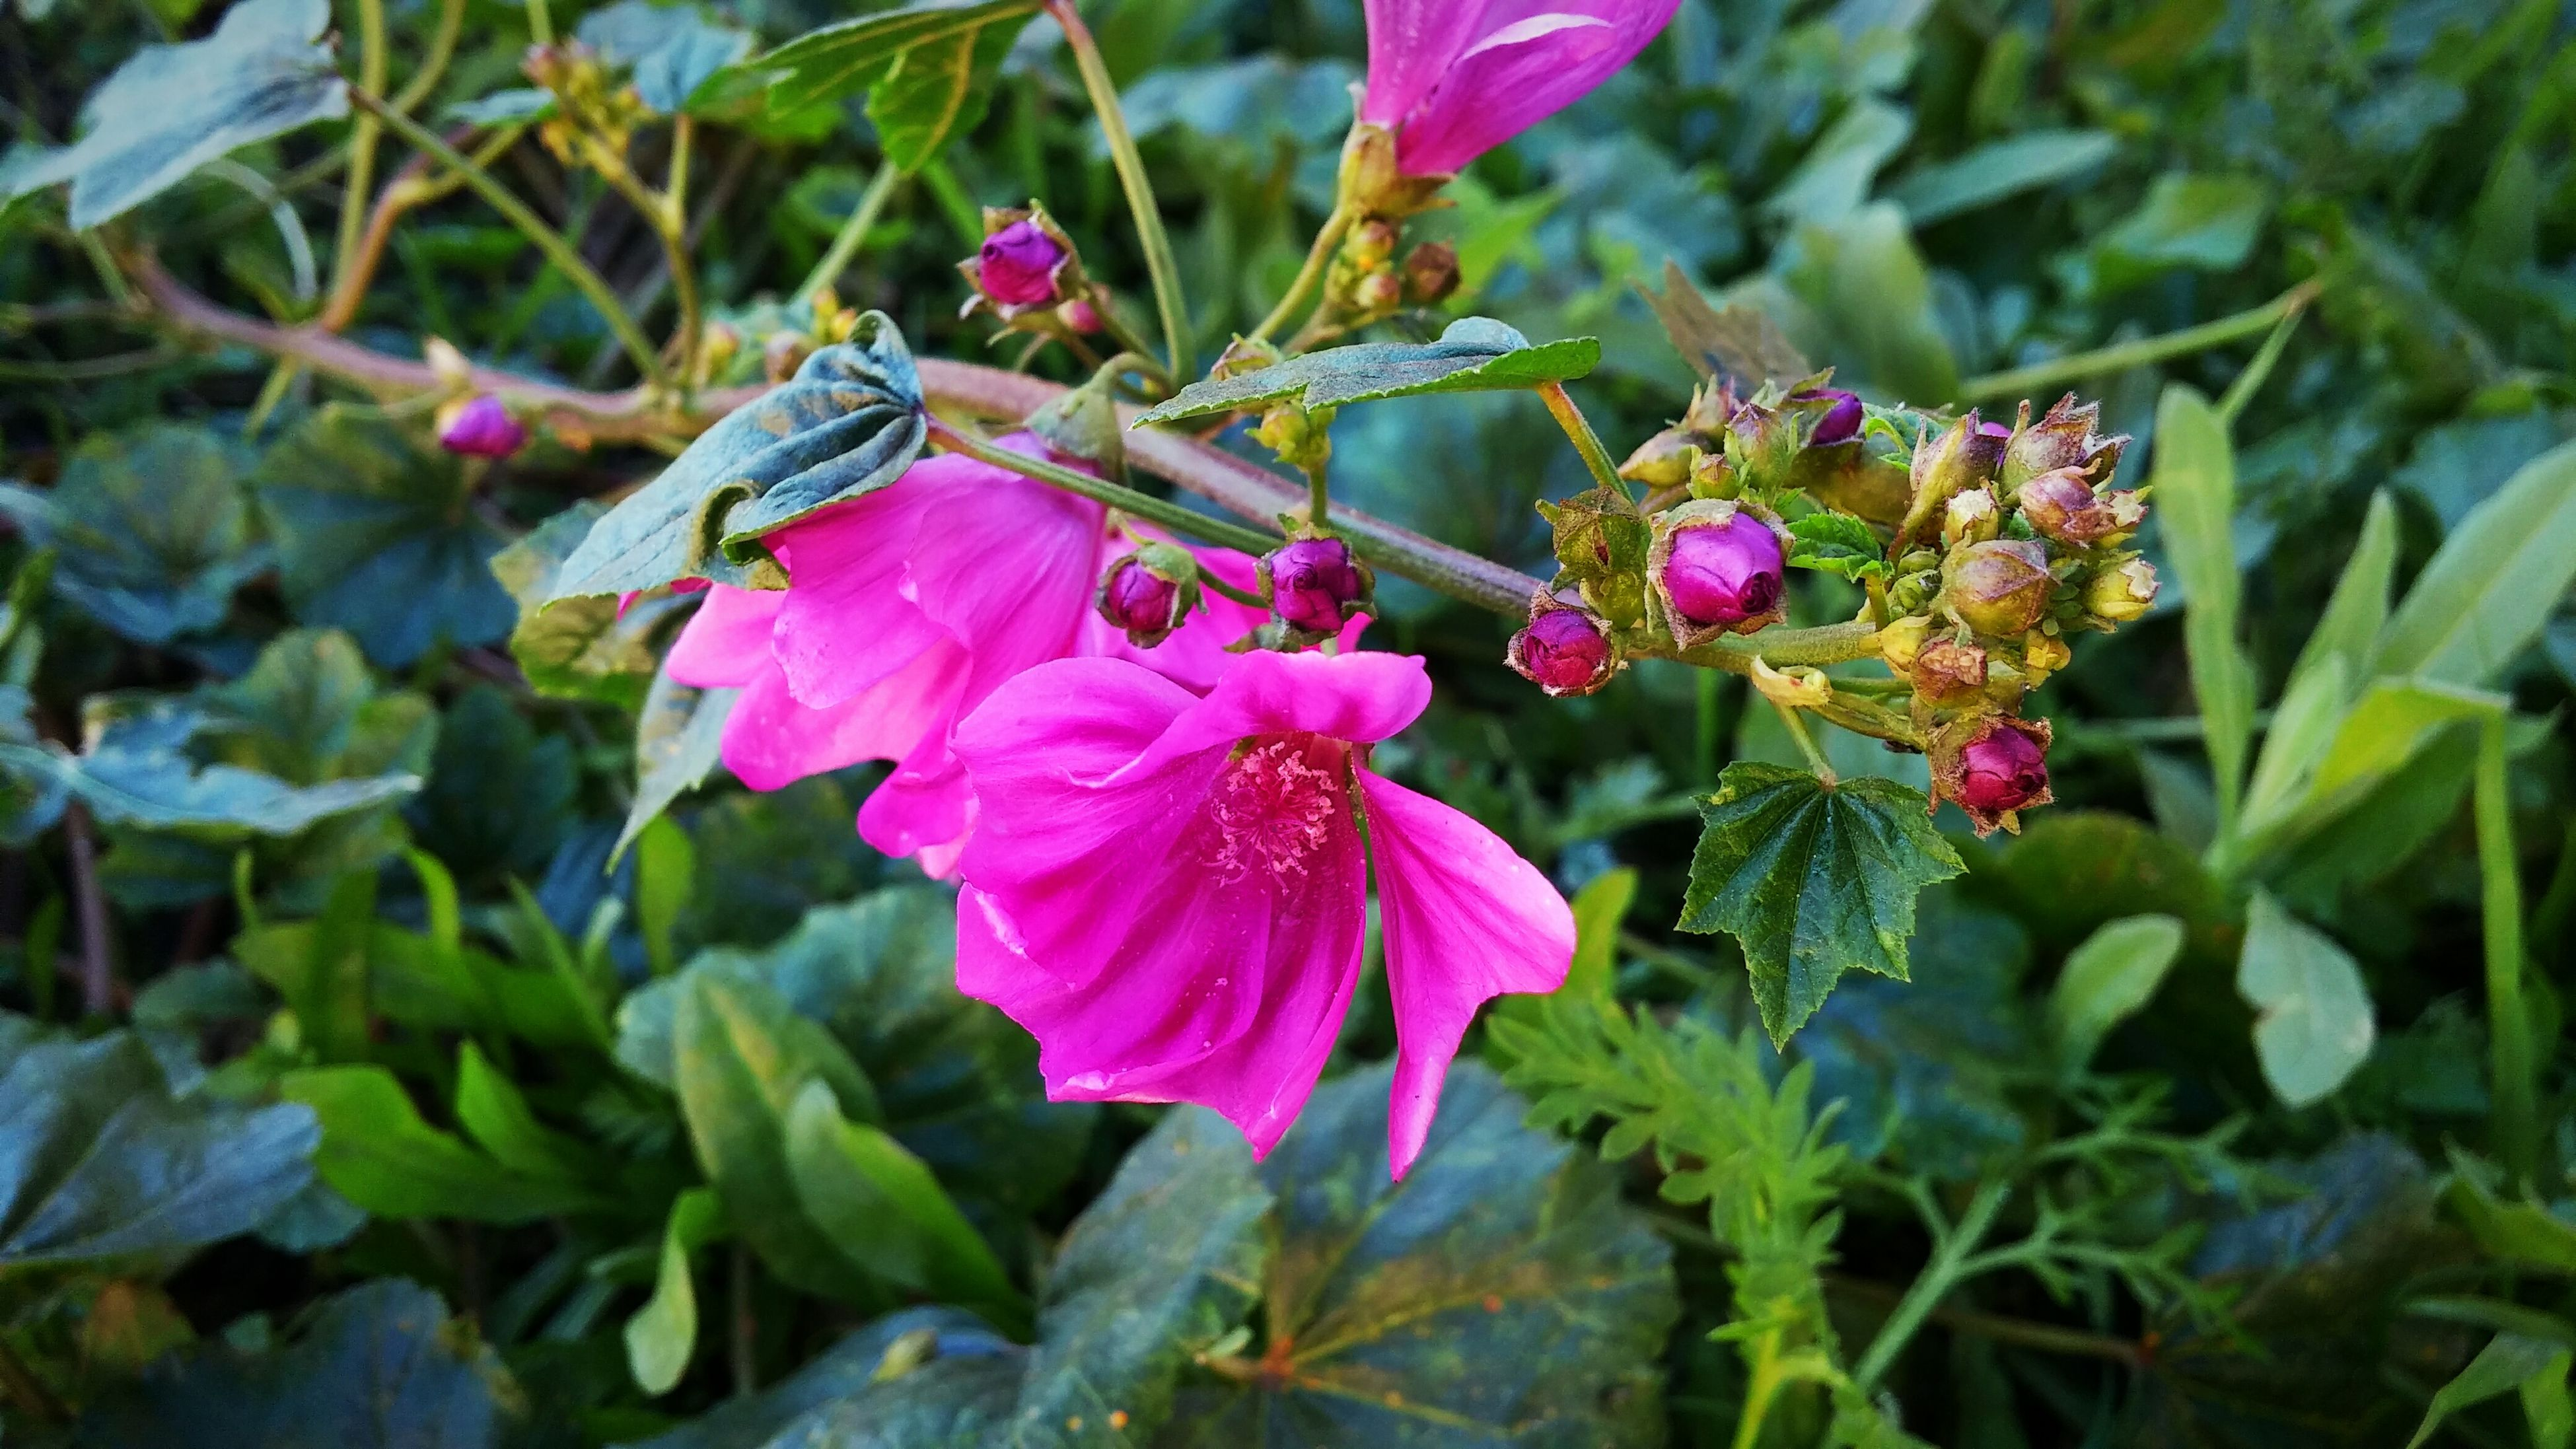 flower, freshness, petal, fragility, growth, pink color, flower head, beauty in nature, close-up, blooming, nature, focus on foreground, plant, leaf, in bloom, blossom, day, outdoors, botany, no people